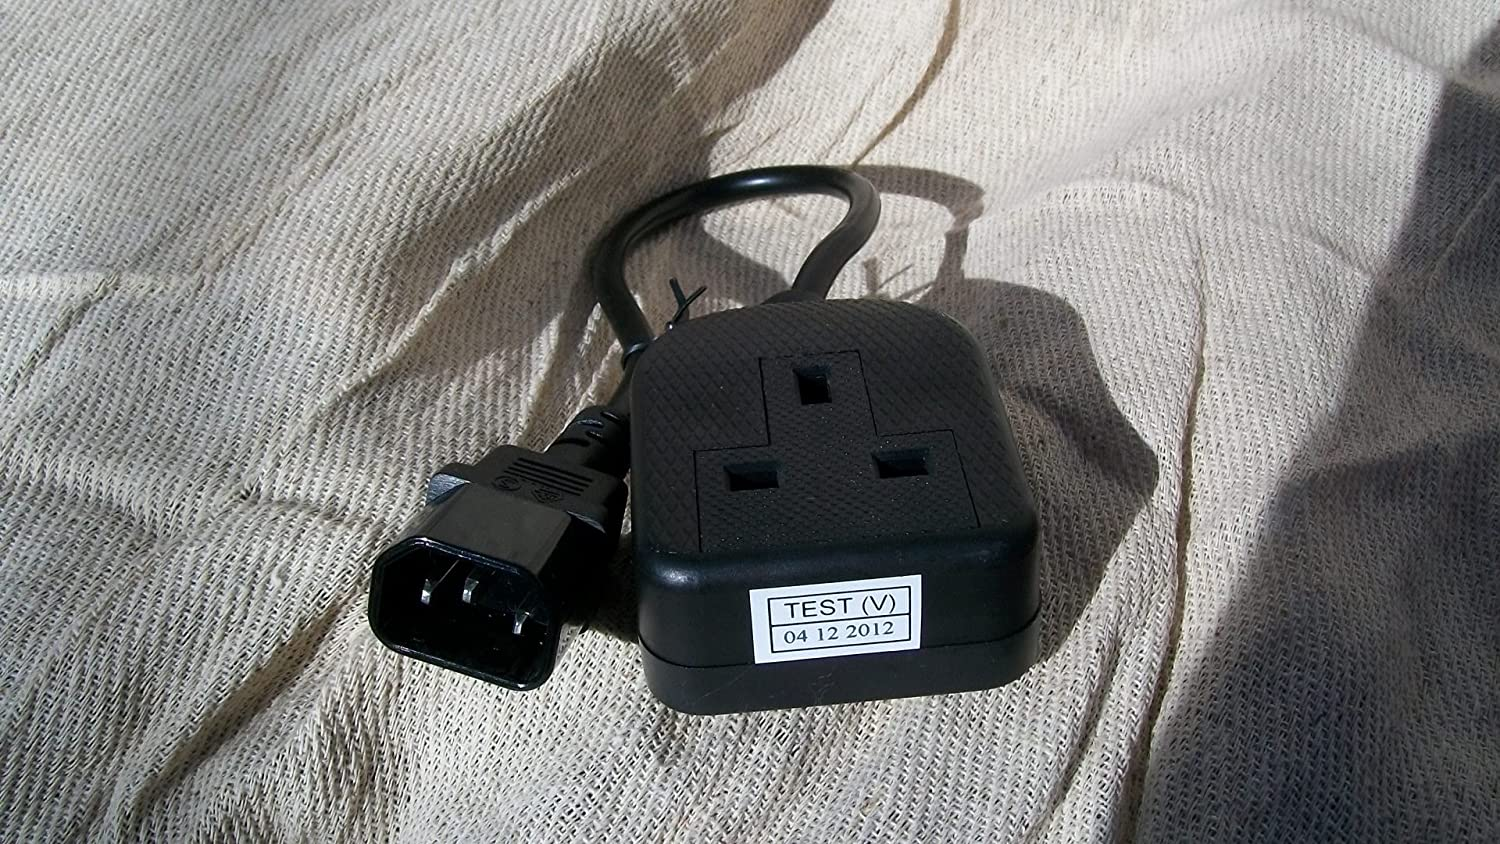 Power Cable Iec C14 Plug 13a Socket 45 Cm With Ce Mark Uk Plugs Bs1363 Old Colour Wiring How To Wire A Approval Computers Accessories